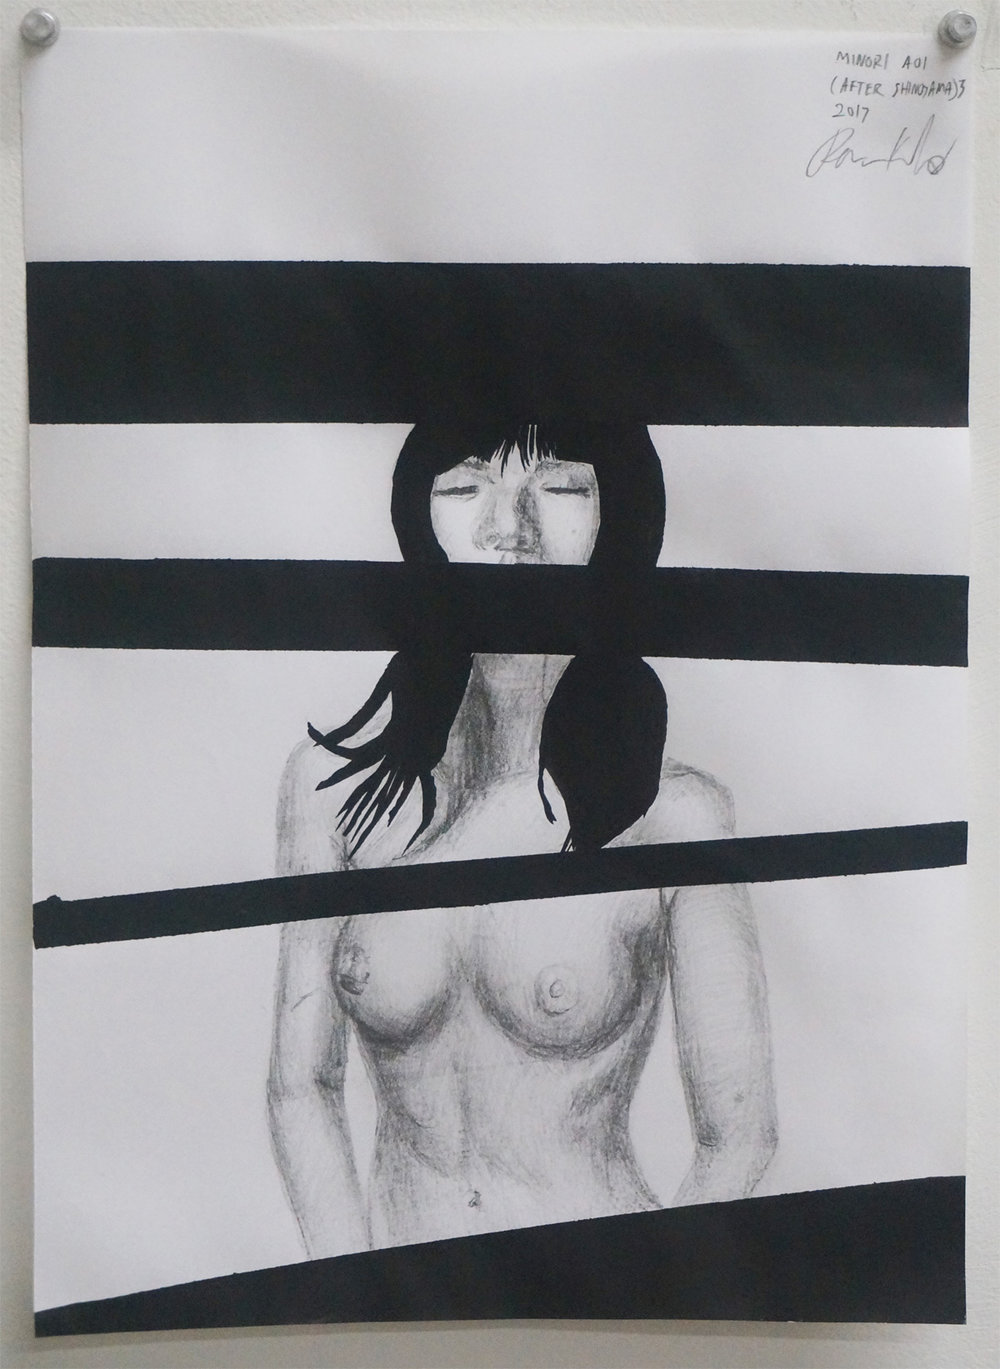 Minori Aoi: After Shinoyama 3 (Bars) , 2017, graphite and gouache on vellum, 8 x 11 inches.